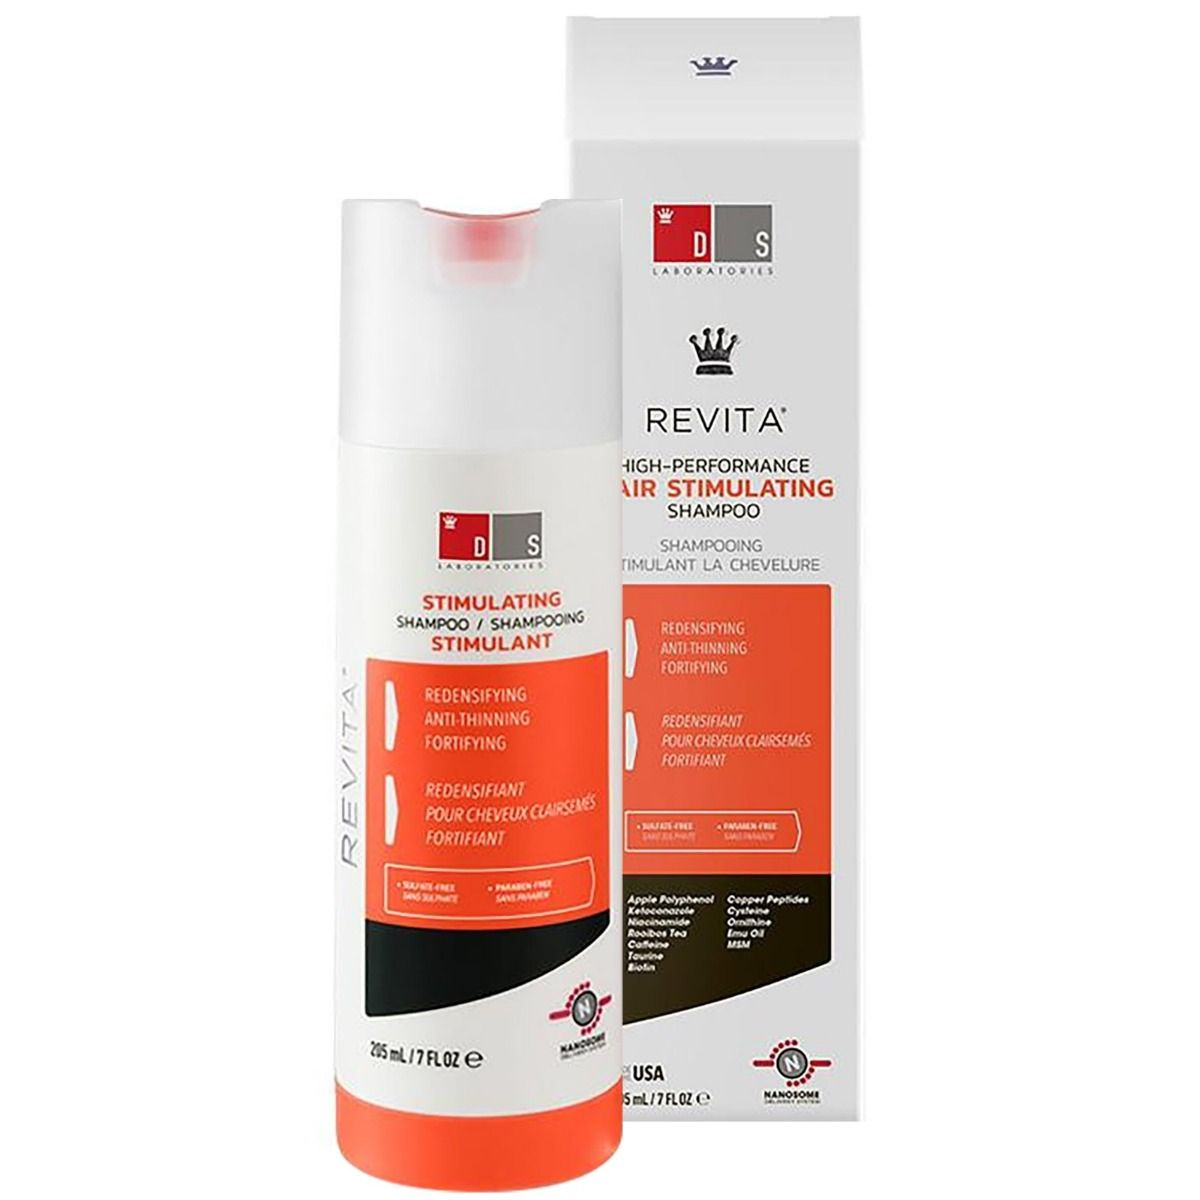 DS Laboratories Revita Shampoo